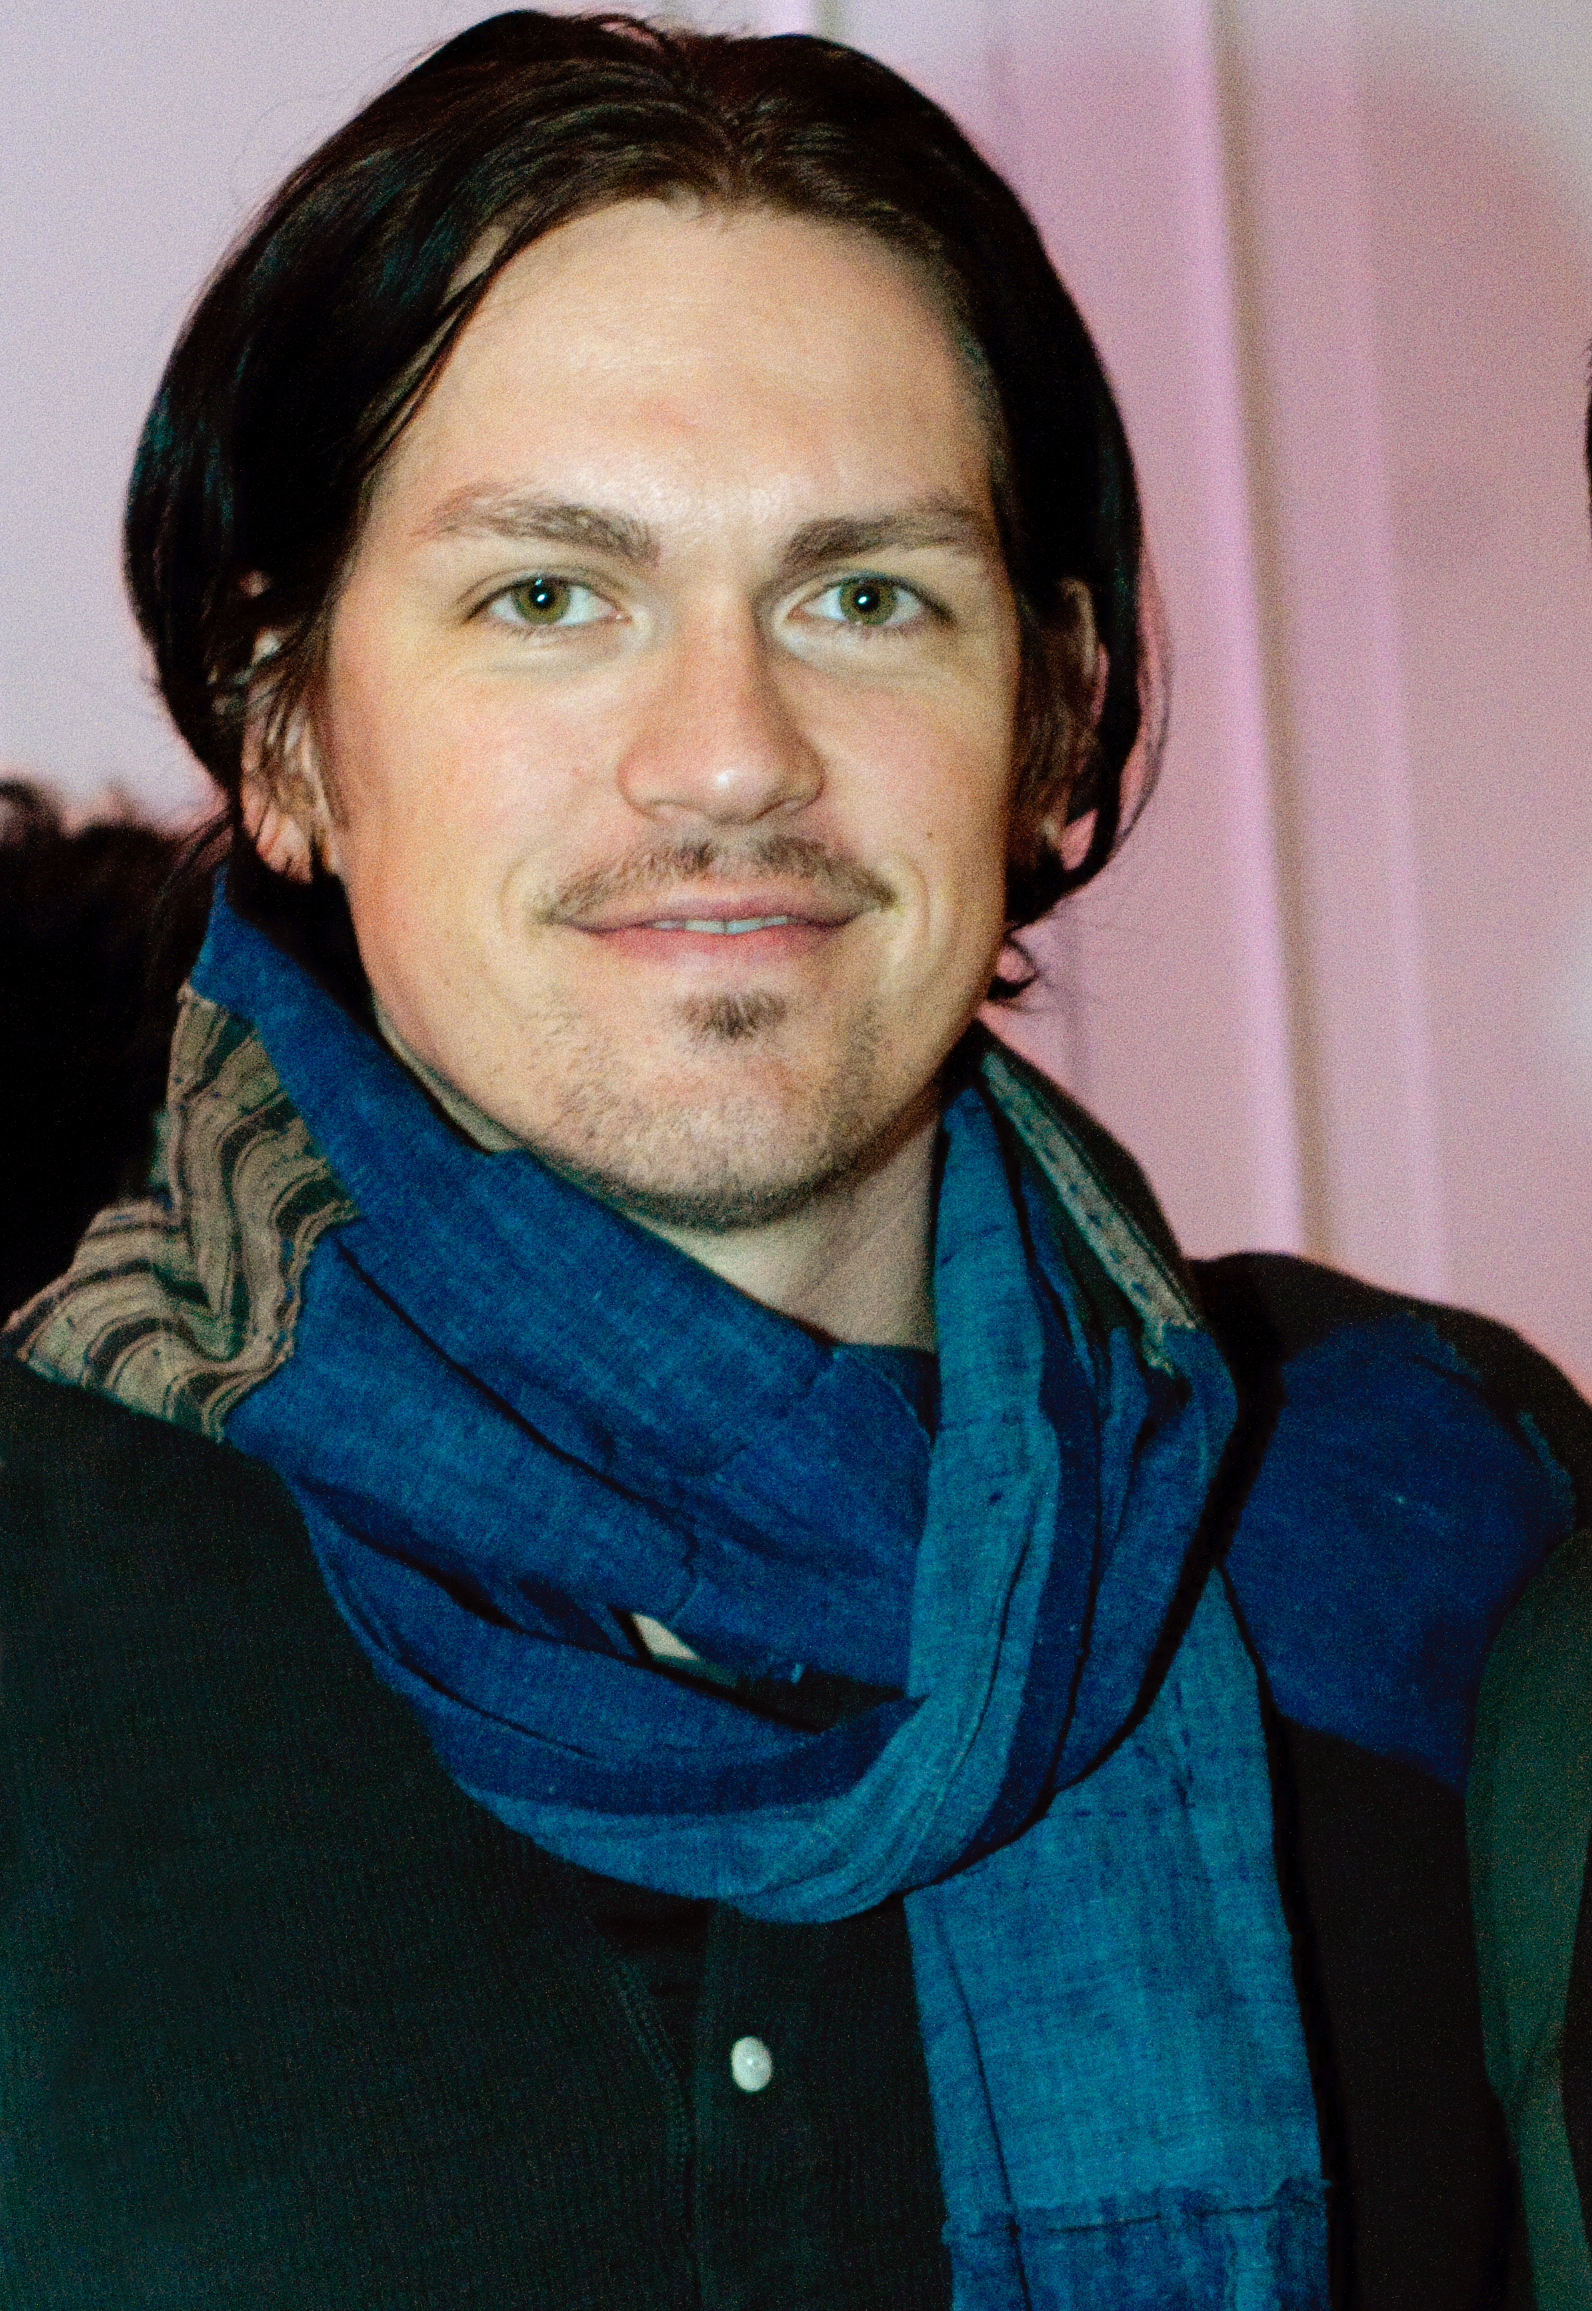 The 41-year old son of father Bill Howey and mother Carla Novinger Steve Howey in 2018 photo. Steve Howey earned a  million dollar salary - leaving the net worth at 13 million in 2018